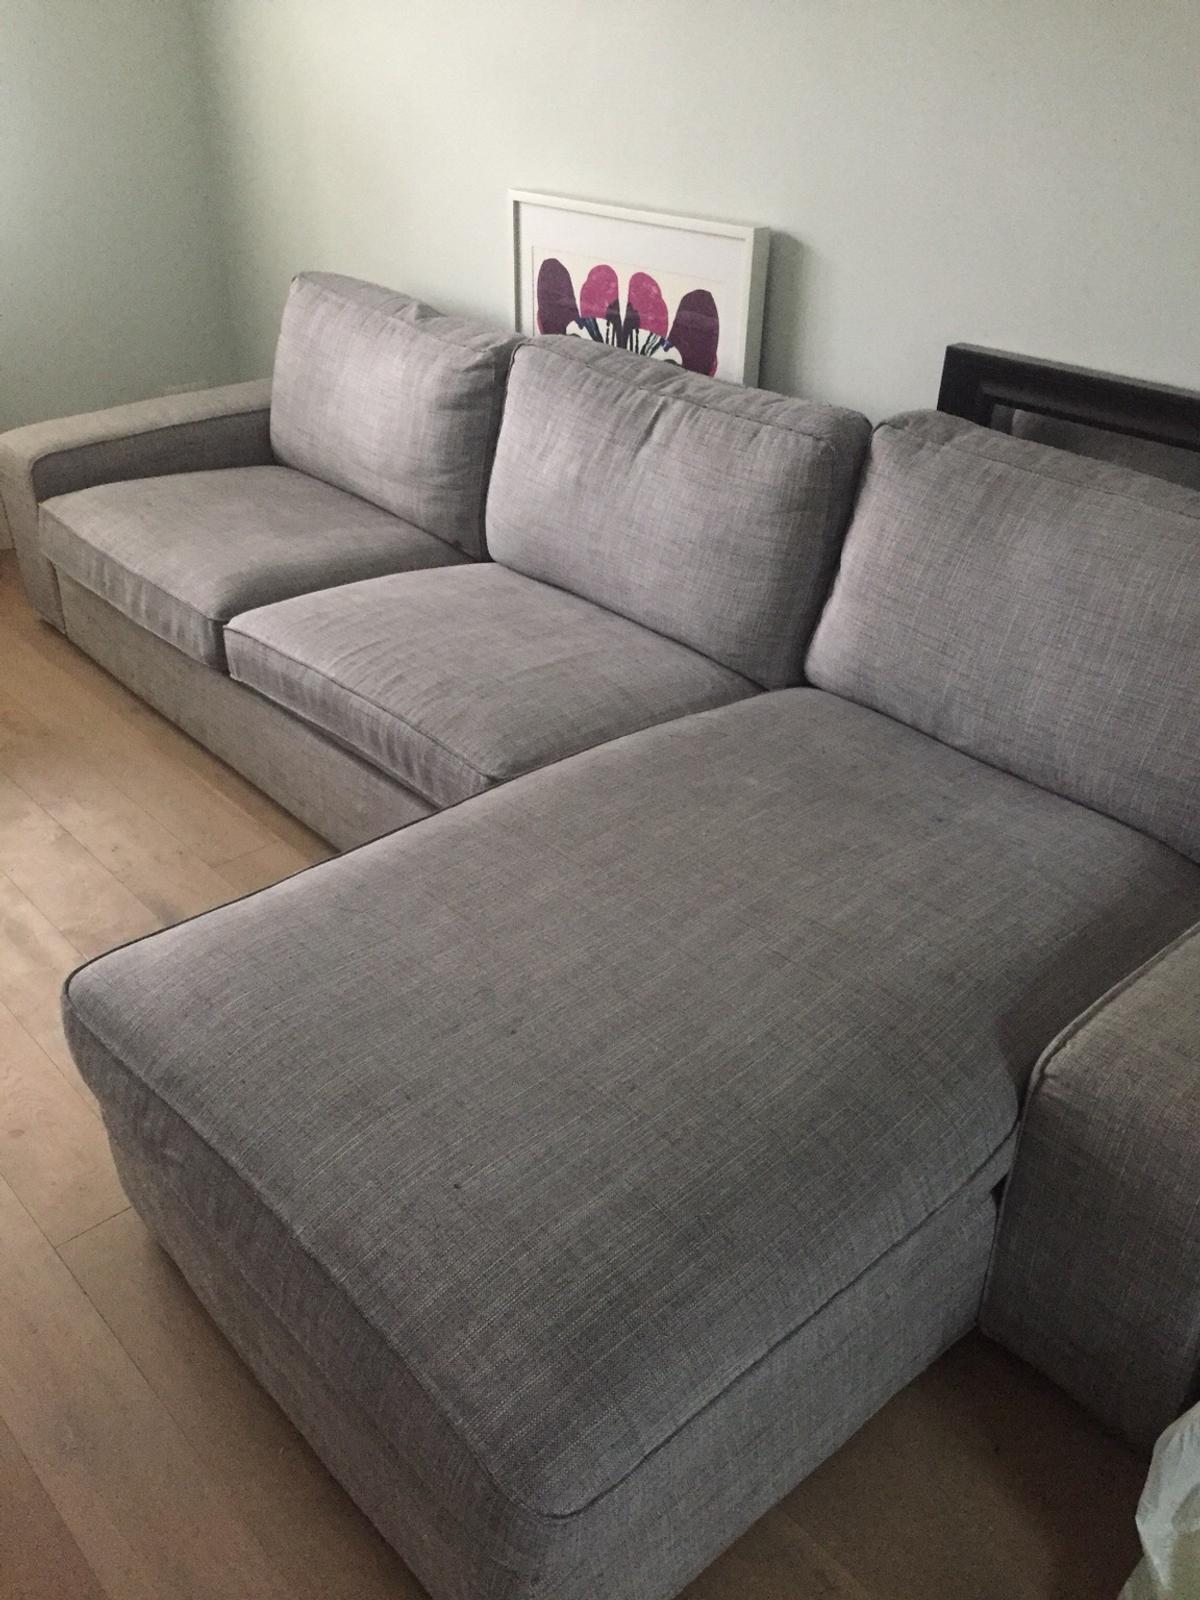 Tremendous 4 Seat Sofa With Chaise Longue Ikea Kivik In N8 Haringey Inzonedesignstudio Interior Chair Design Inzonedesignstudiocom